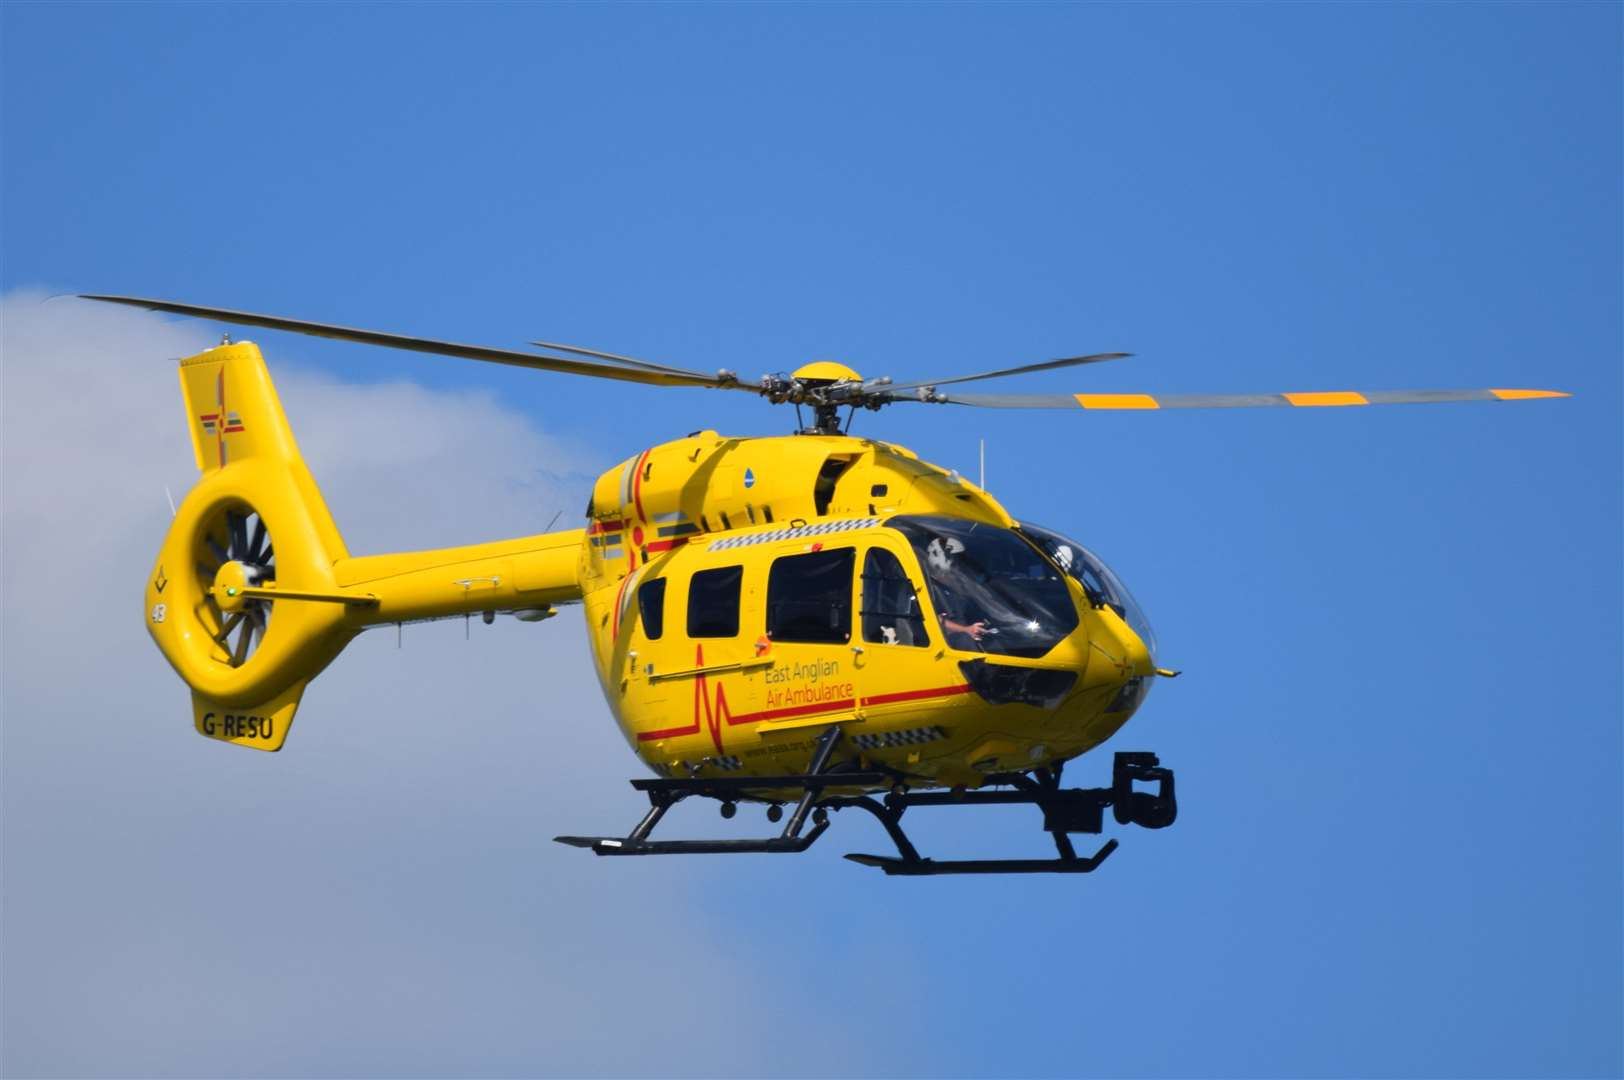 An East of England Air Ambulance helicopter (4902454)